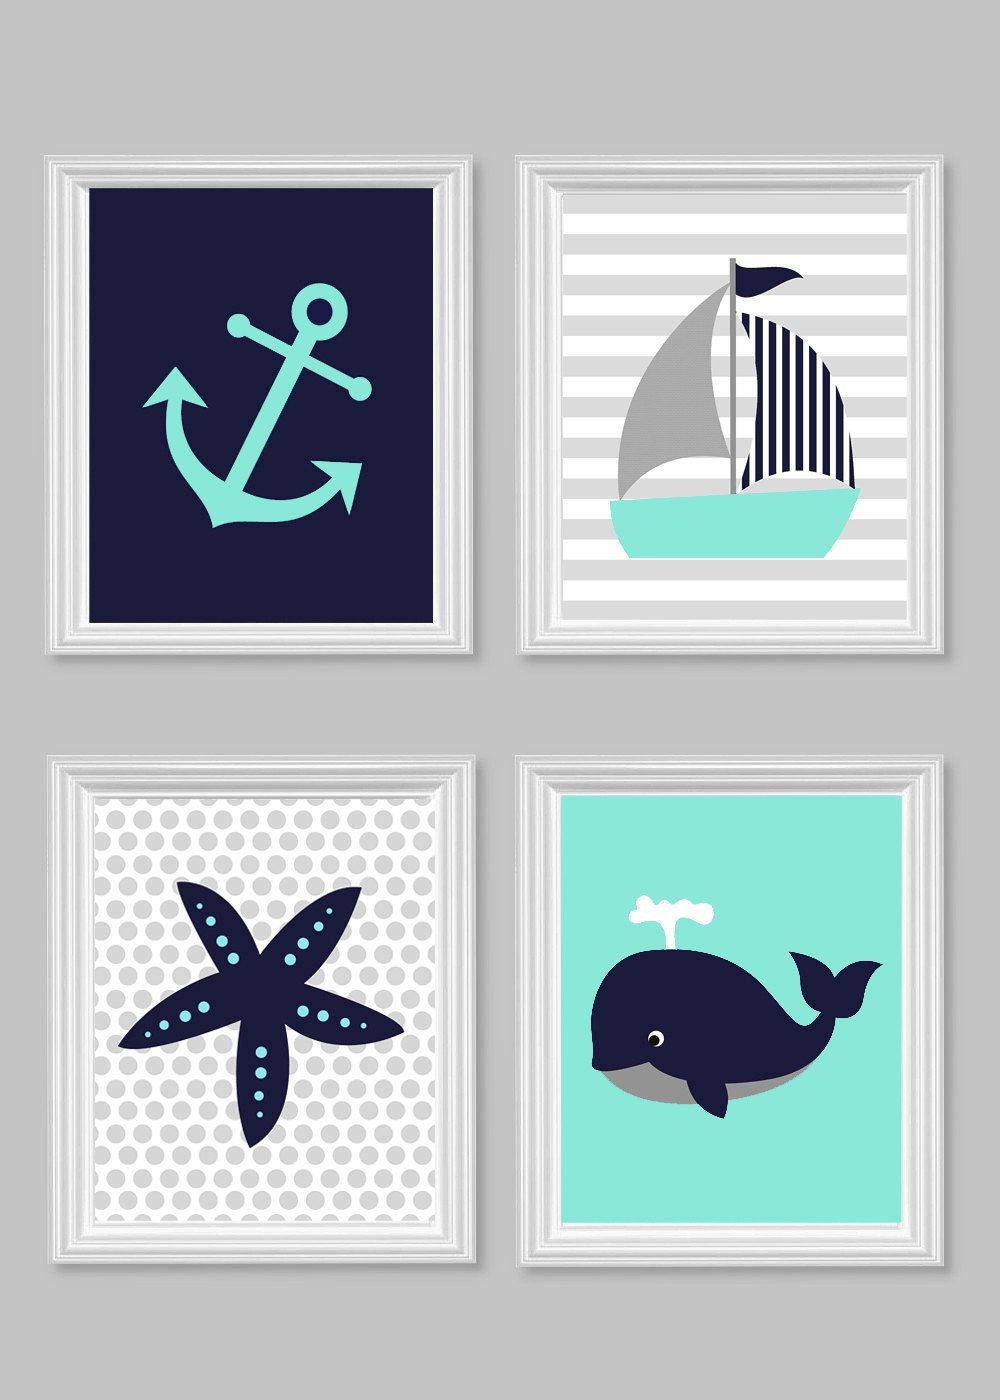 Nautical Nursery Nursery Wall Art Gender Neutral Nursery Etsy Nautical Nursery Wall Nautical Nursery Decor Sailboat Nursery